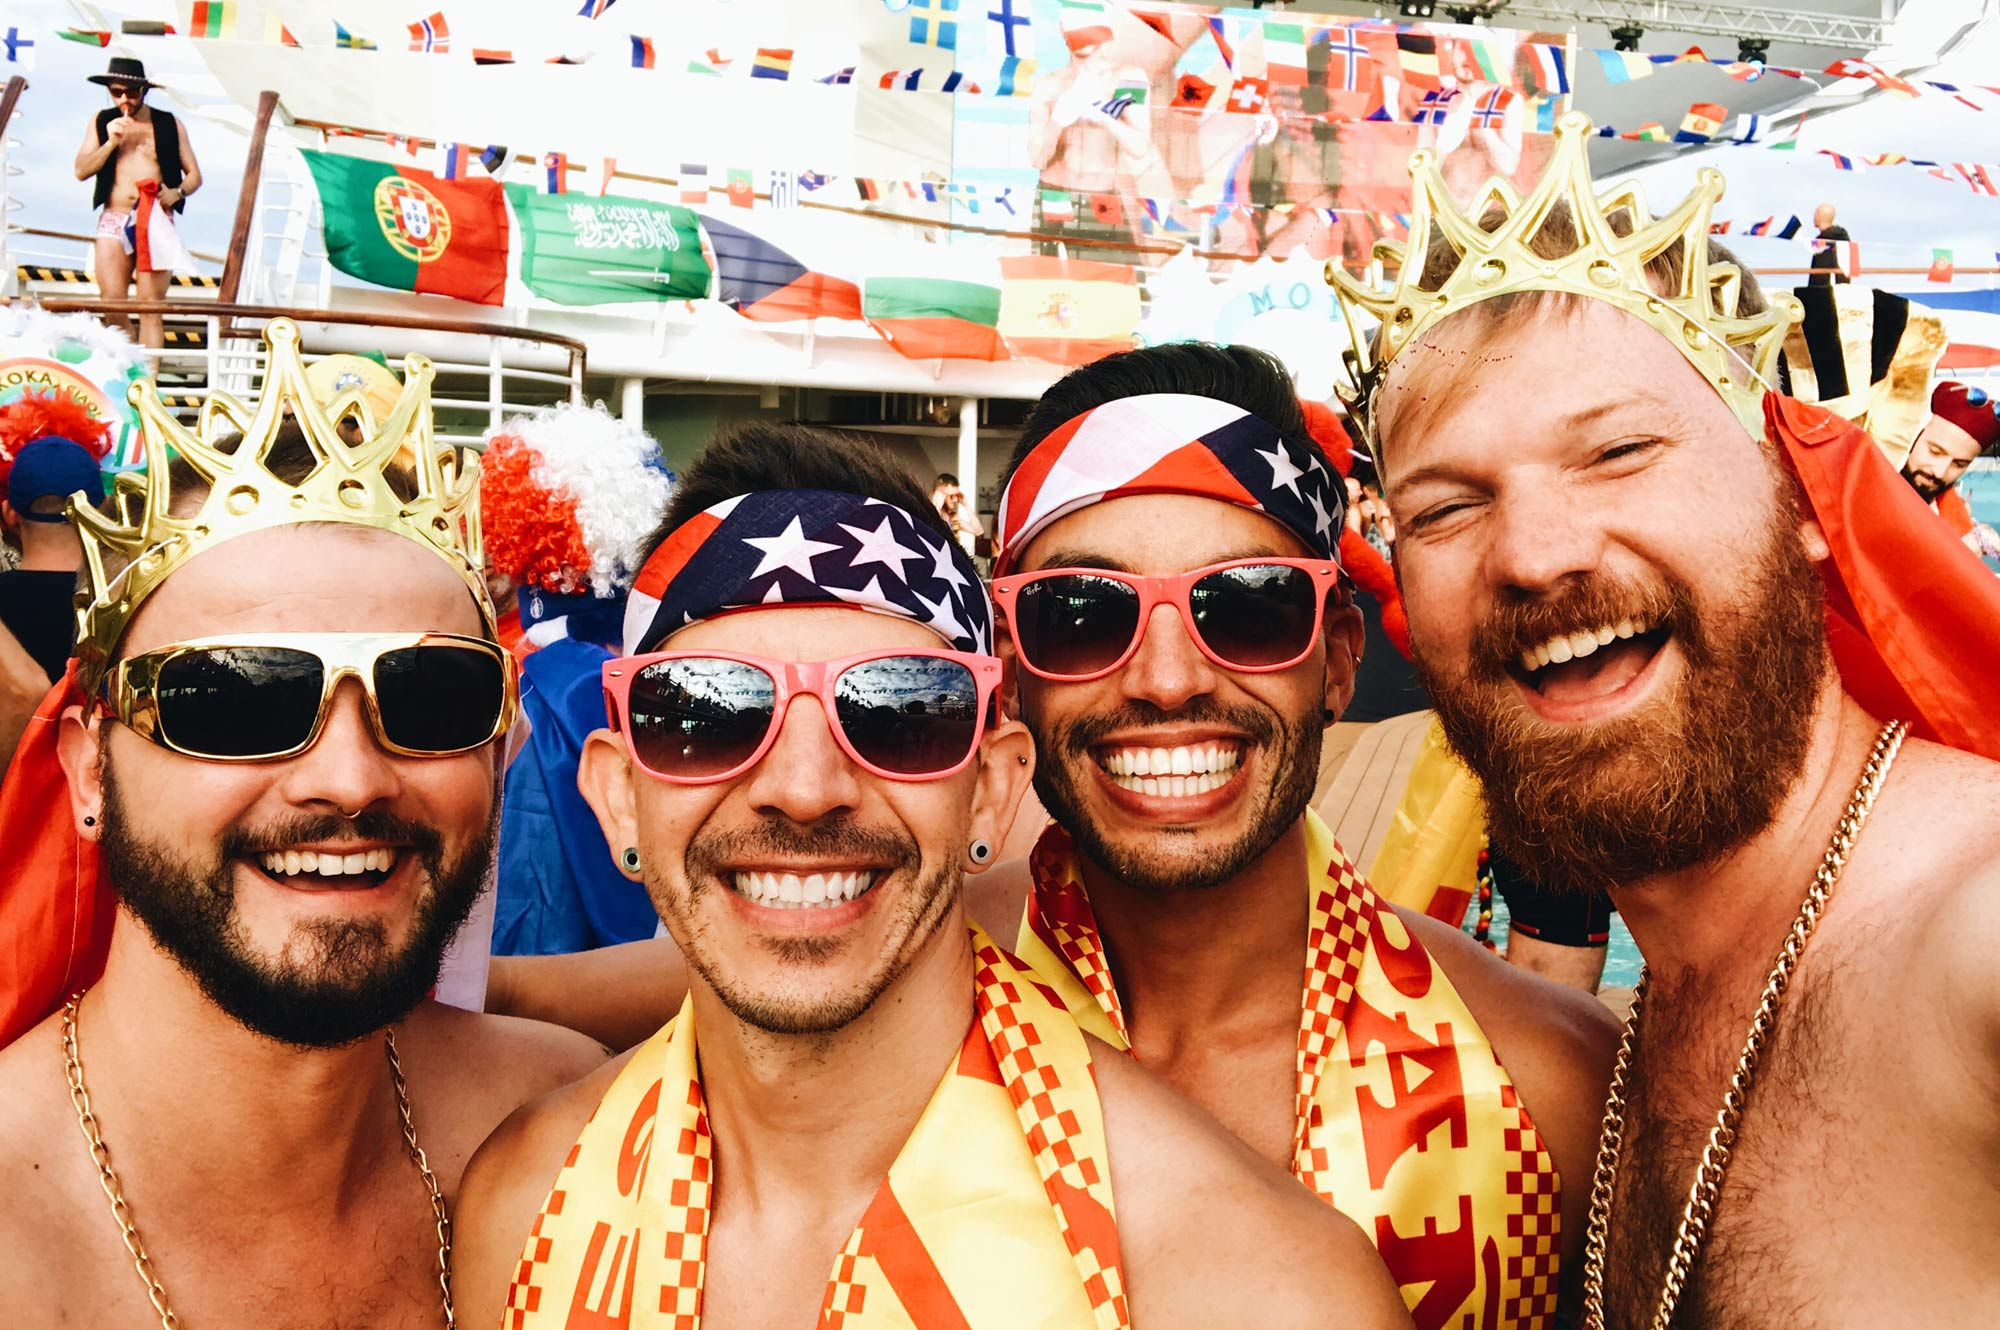 Gay Travel Blogger TwoBadTourists and Coupleofmen Where are you from Party The Cruise 2017 © CoupleofMen.com together Gay Travel Blogger TwoBadTourists